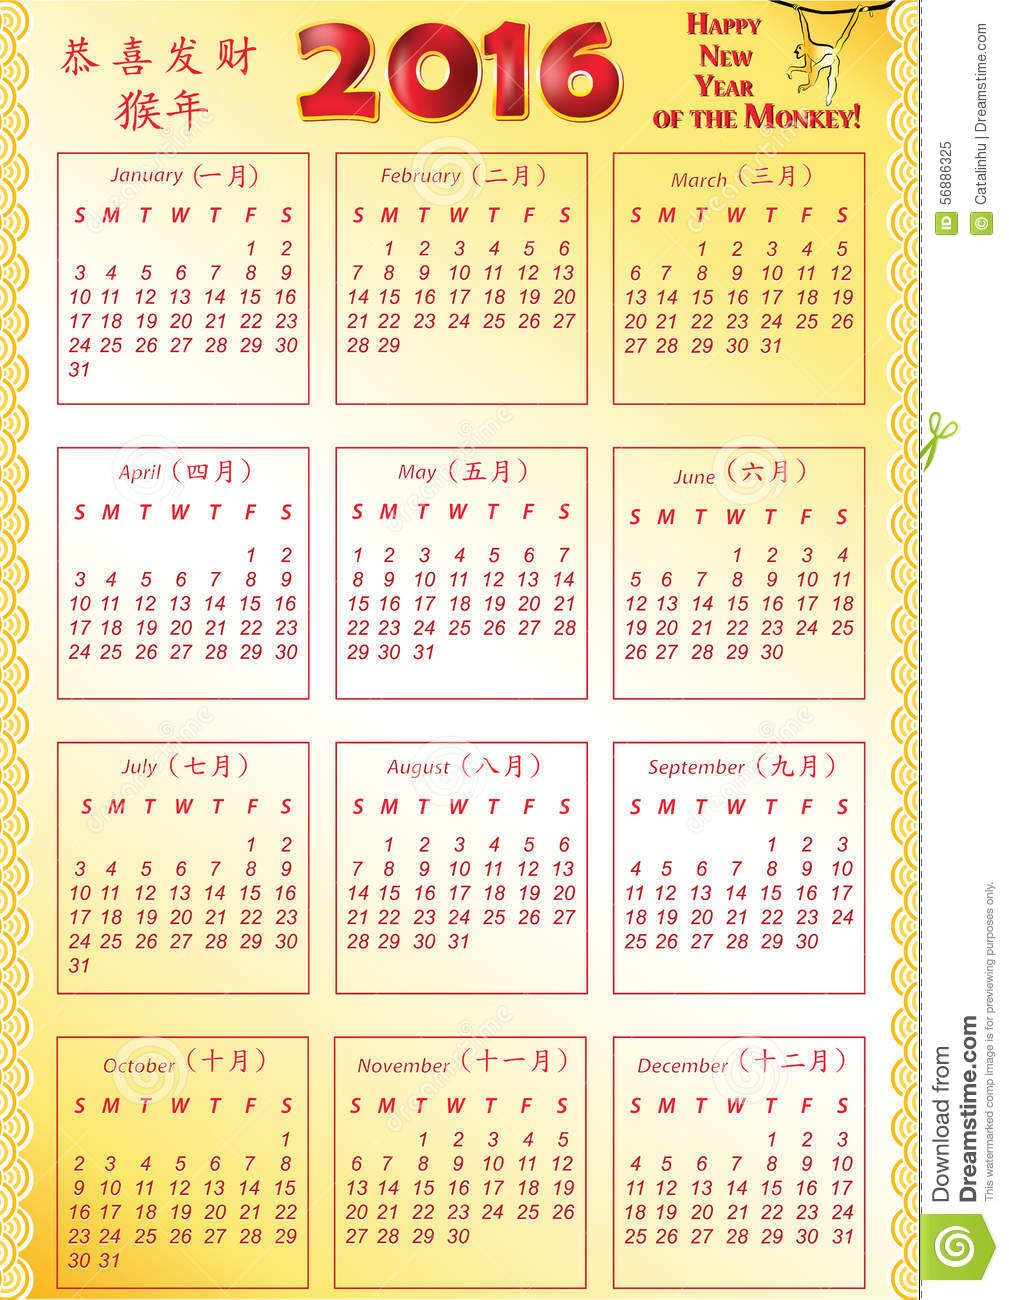 Holidays and Observances in China in 2016 - Time and Date